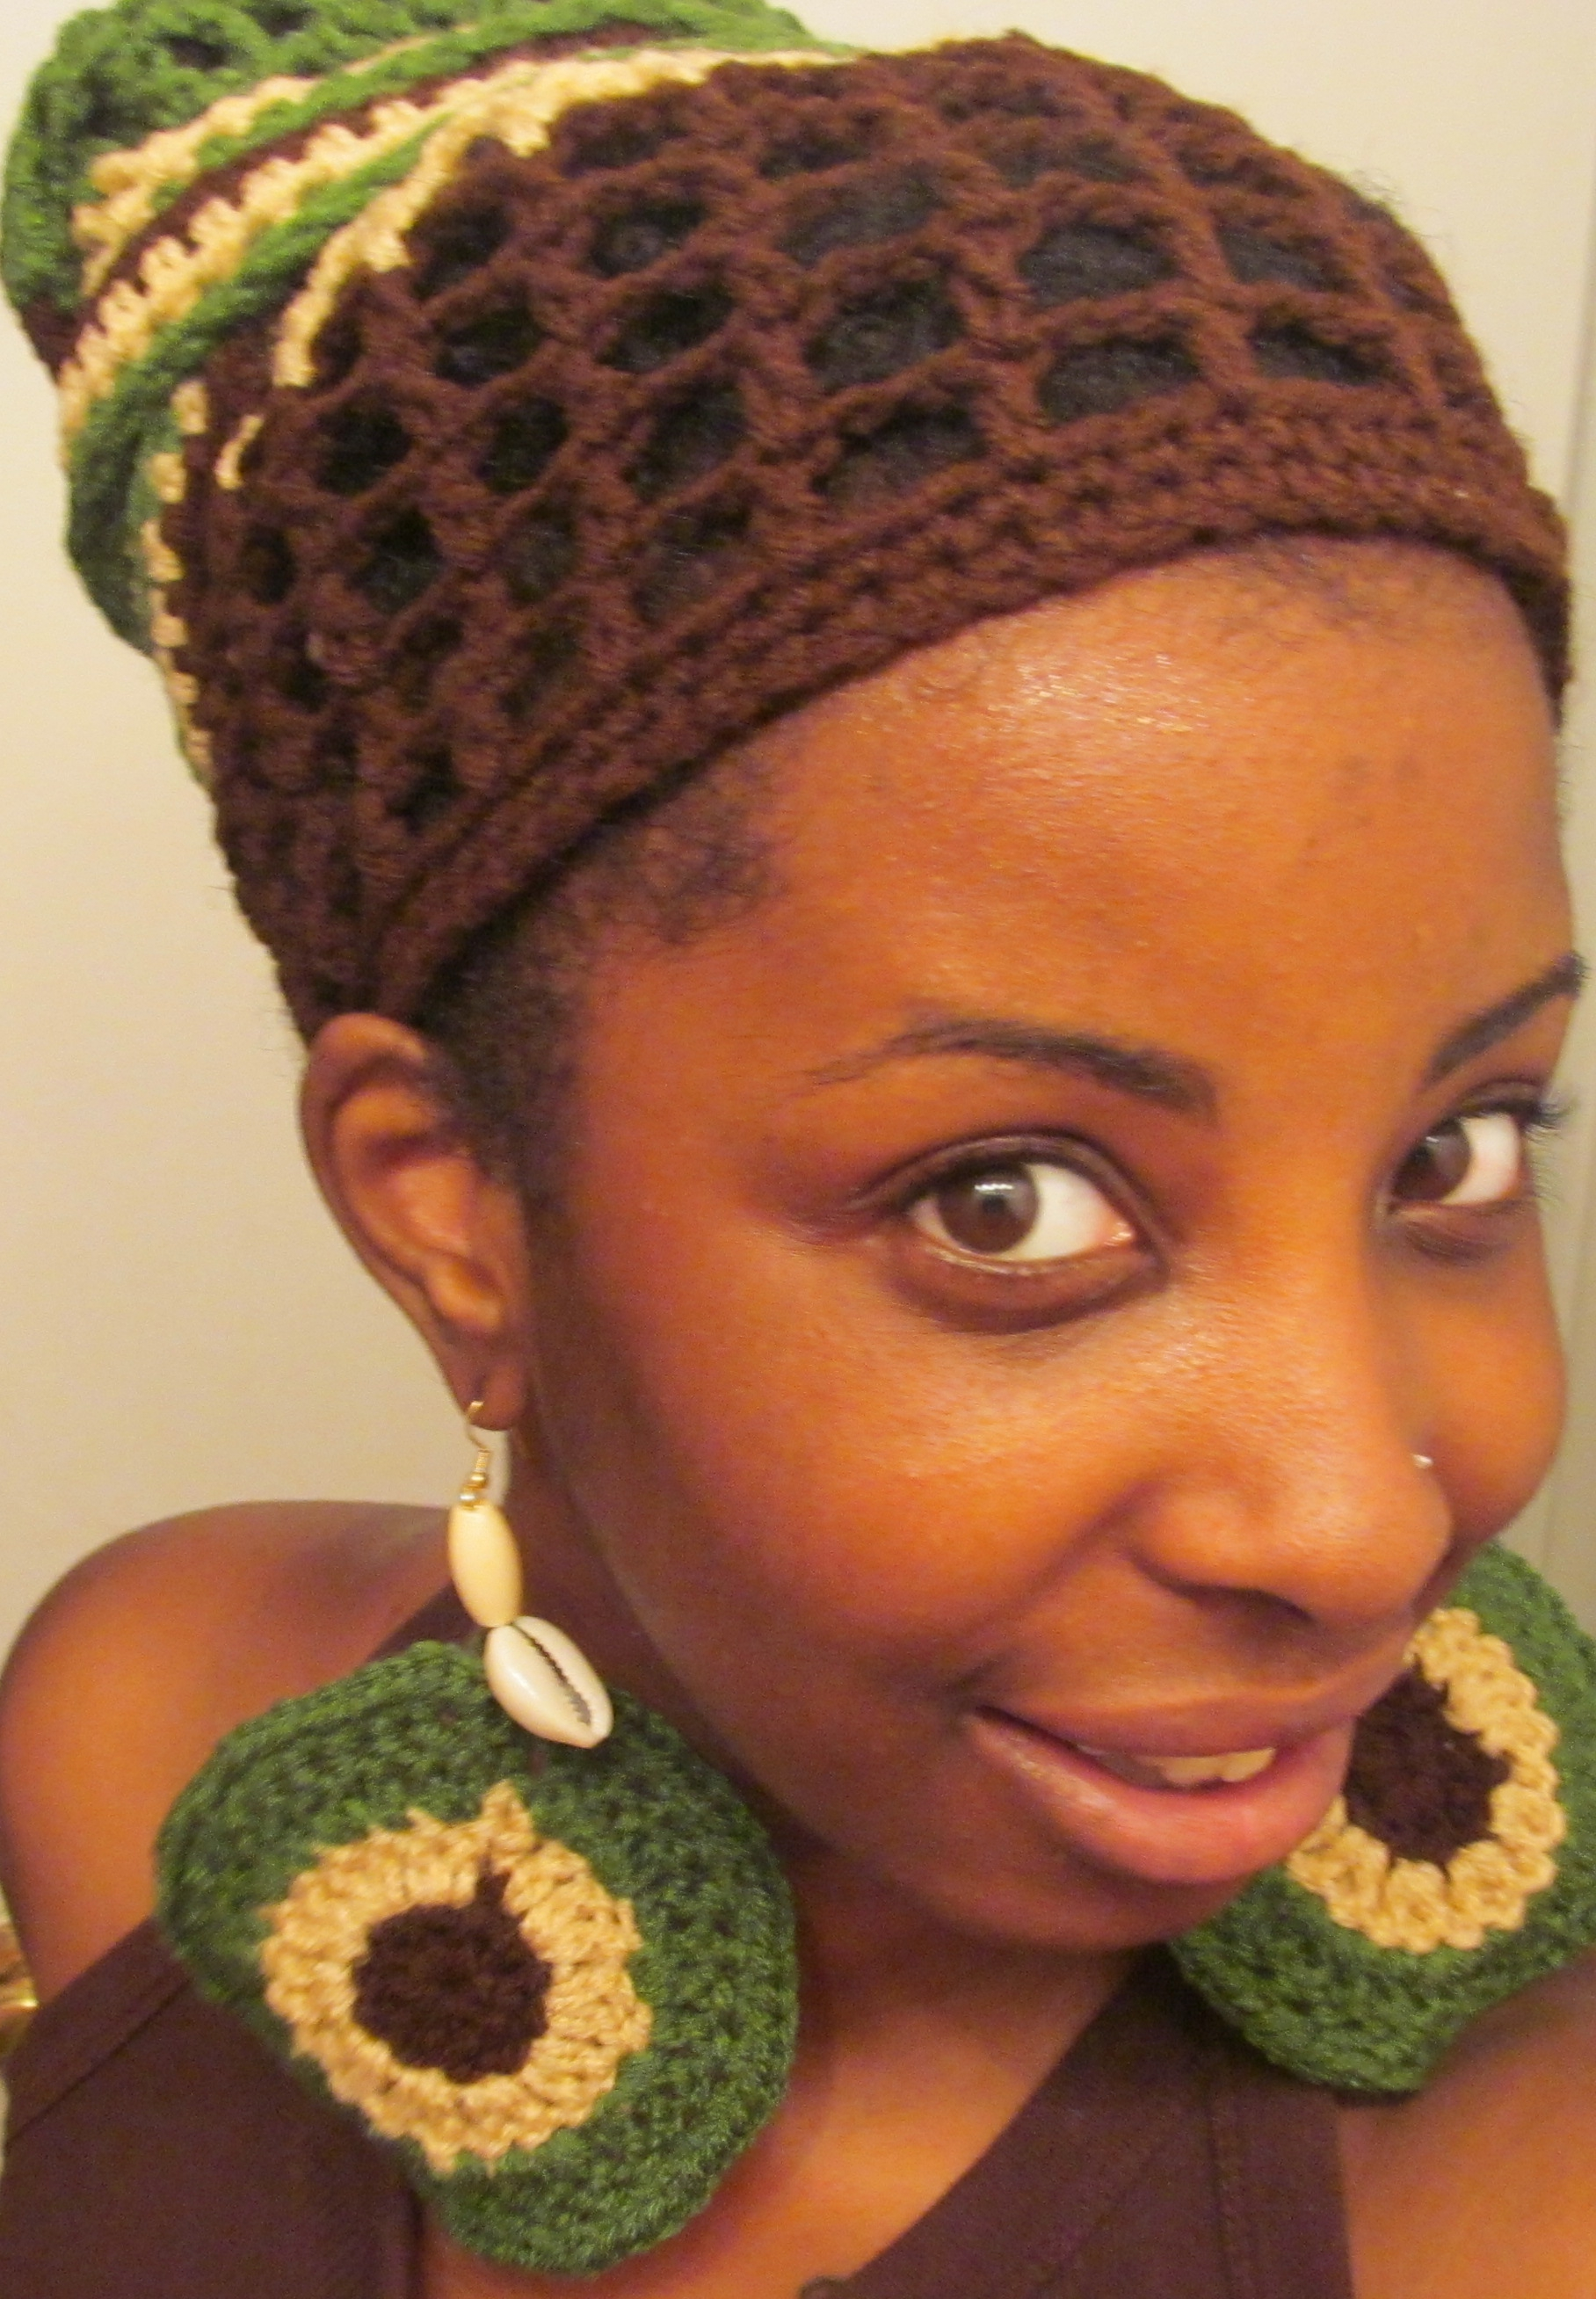 Crochet Hair Wrap : ... wrap in many ways! You can wear it as a wrap, turban, or just a hair